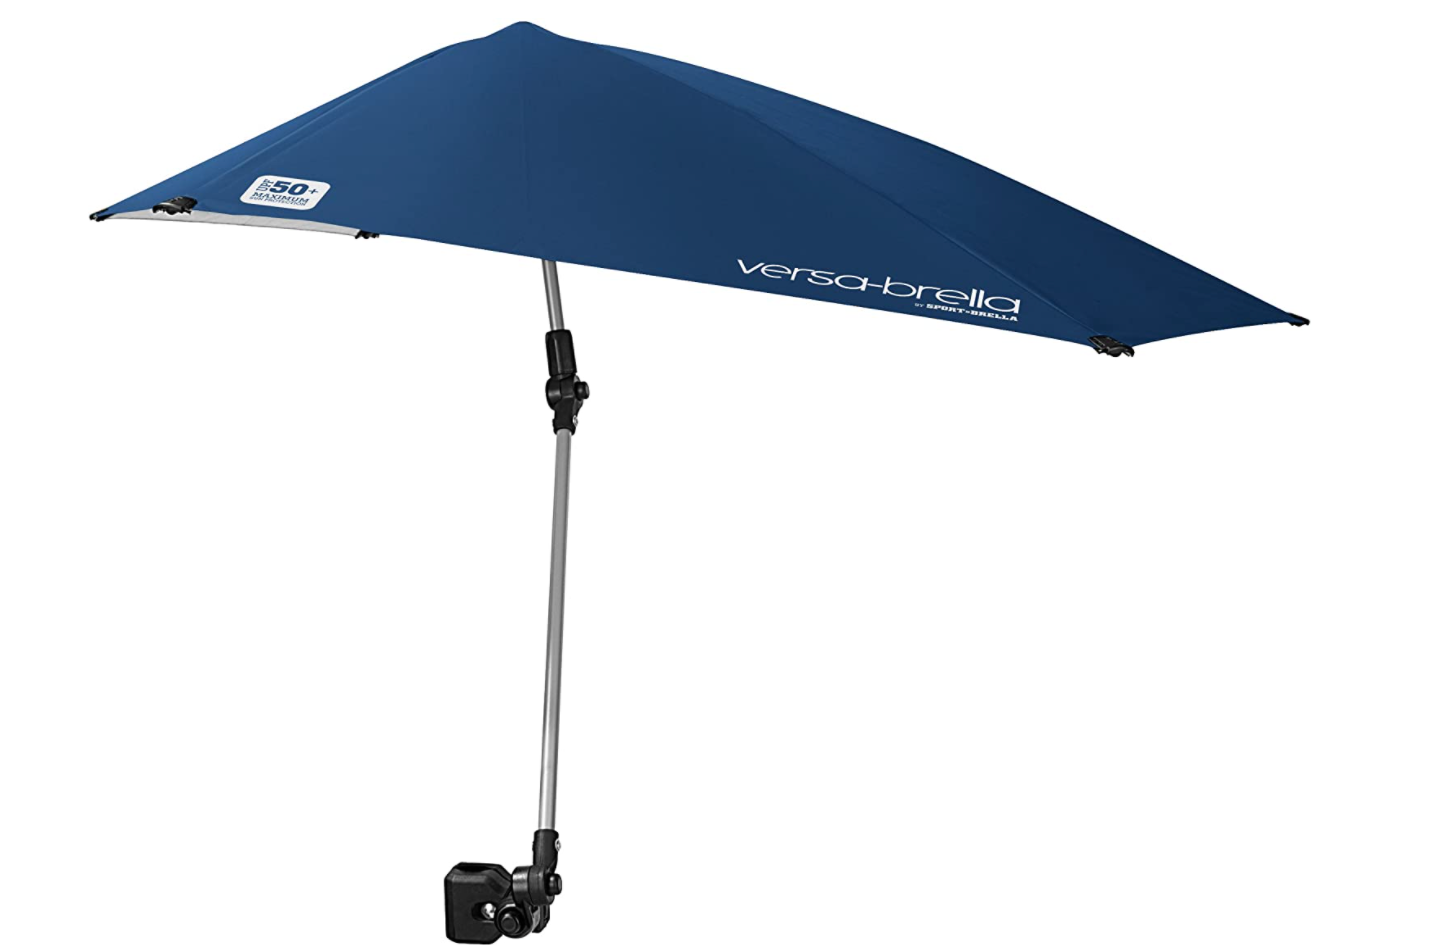 Adjustable Umbrella with Universal Clamp